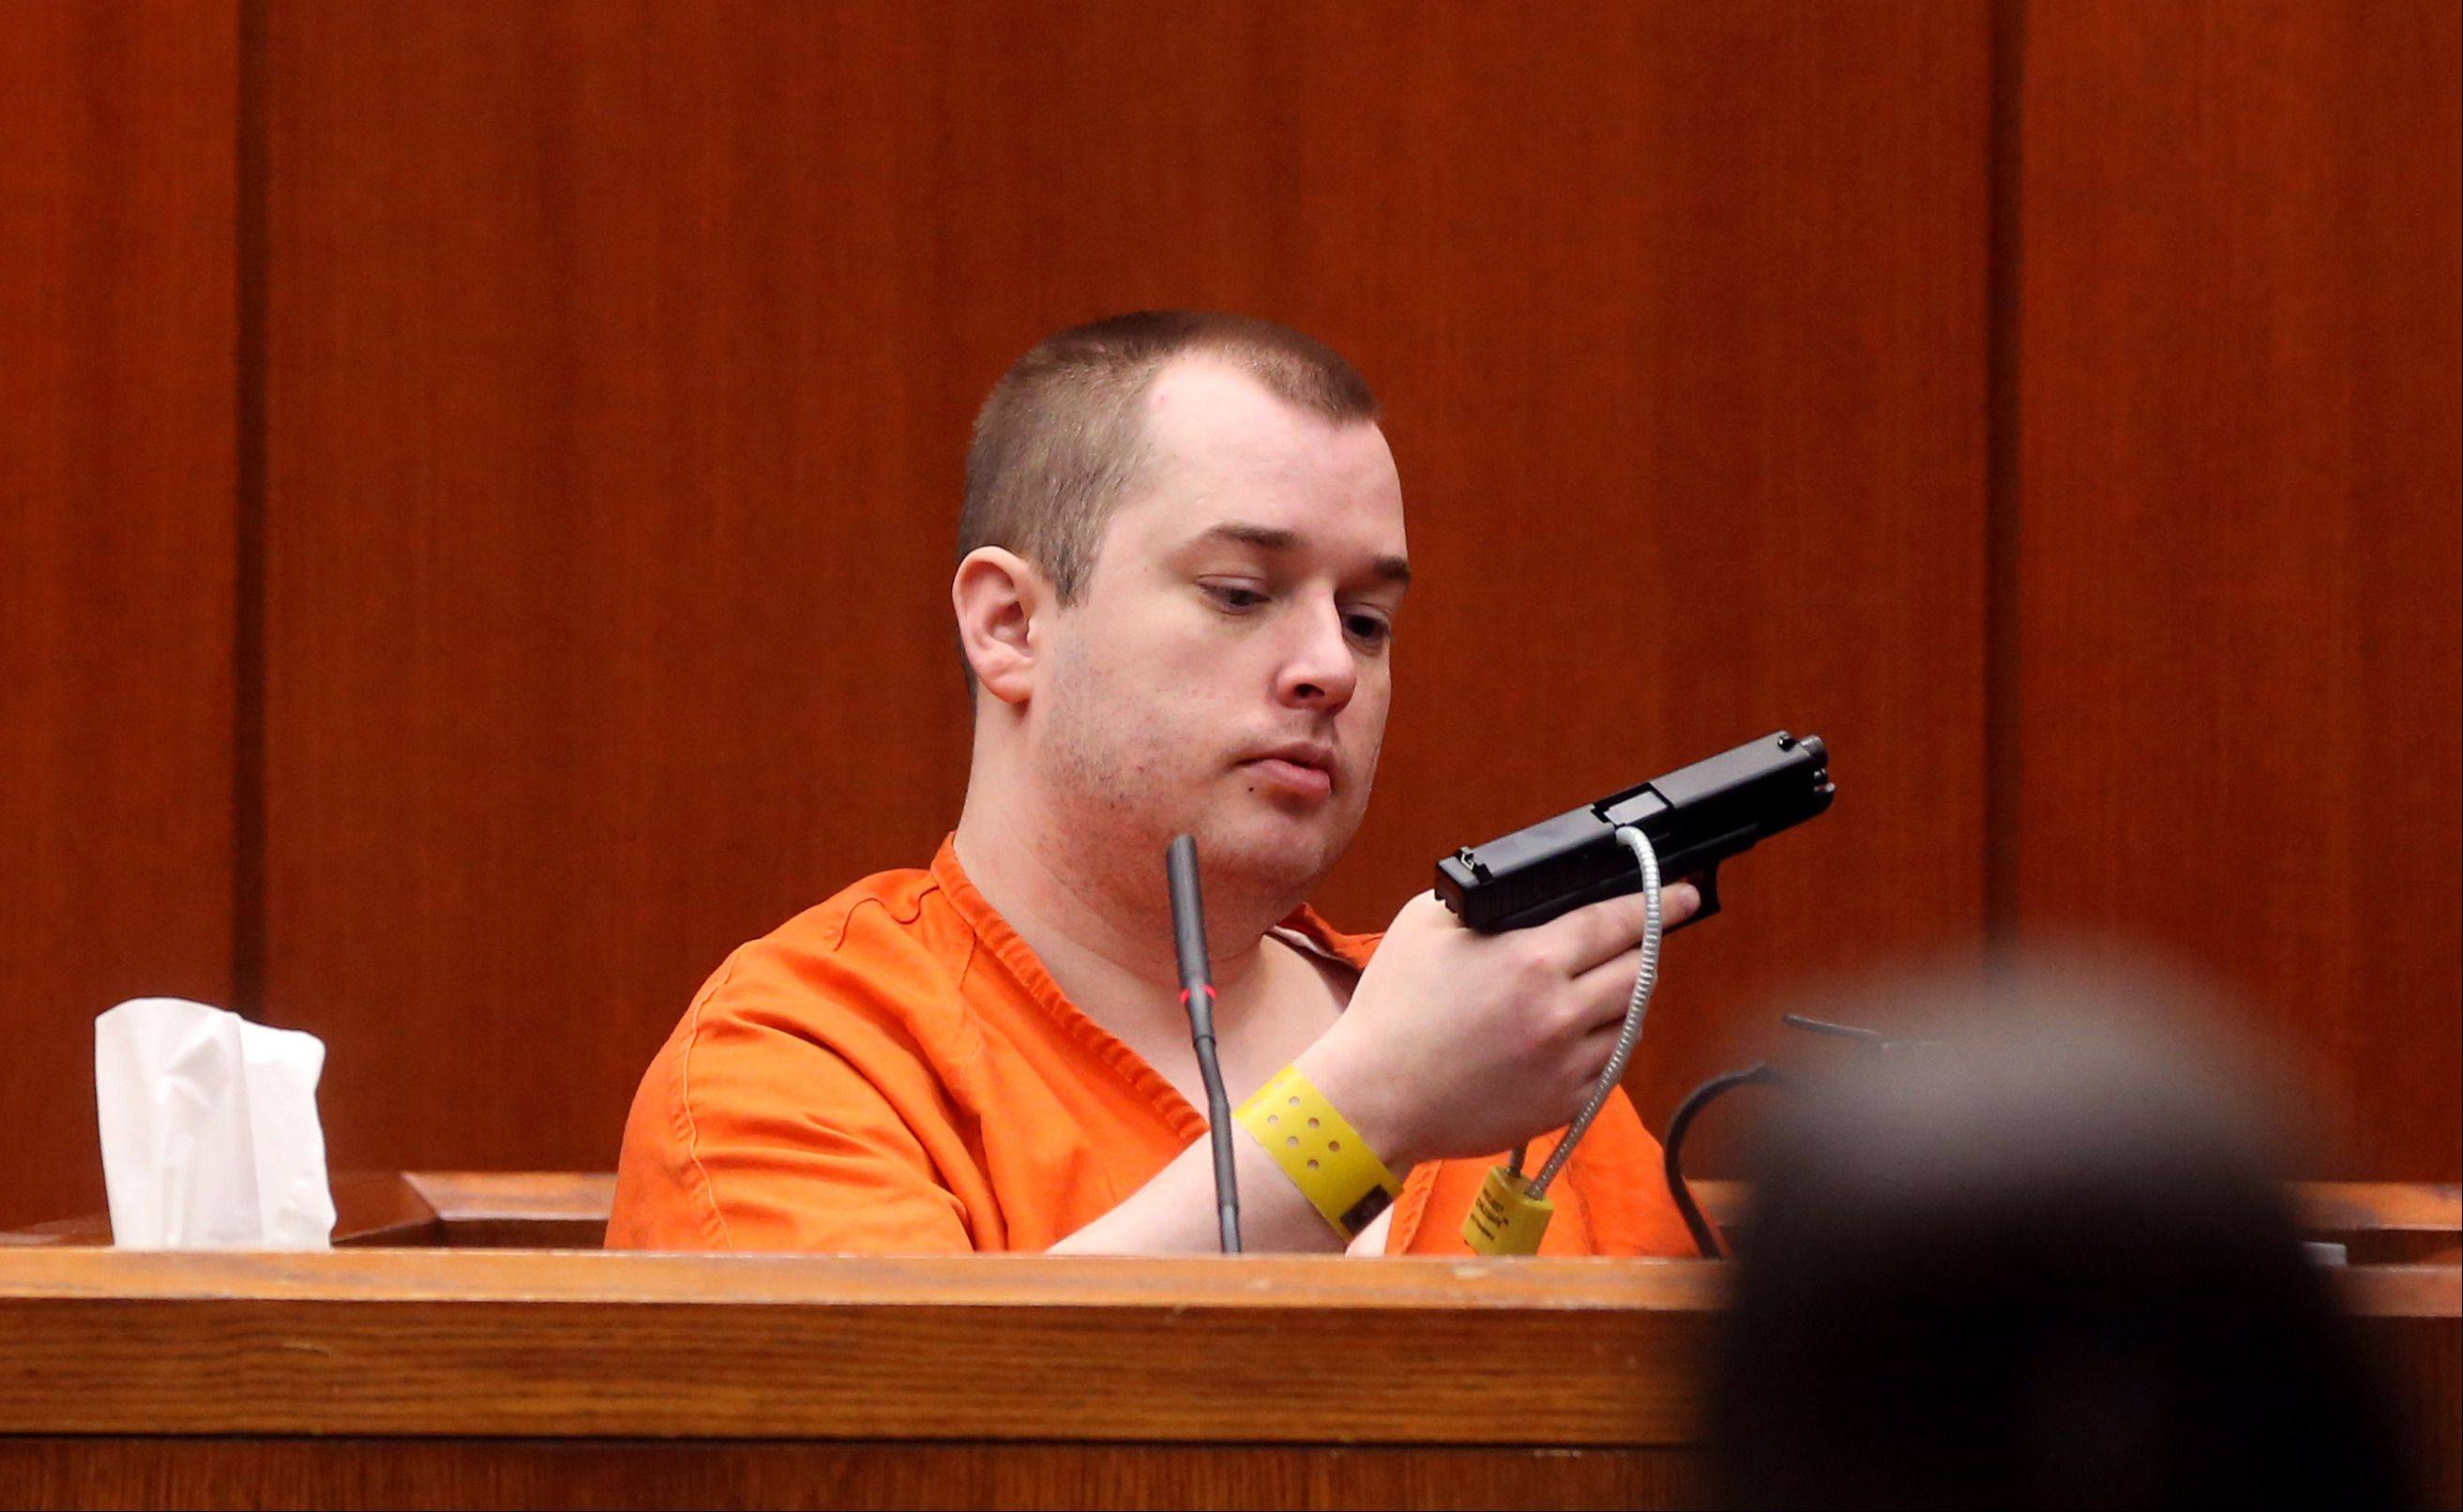 Jacob Nodarse holds the gun he used to fatally shoot Michael Kramer, 20, and Kramer's parents, Jeffrey, 50, and Lori, 48, during cross-examination in the April trial of Johnny Borizov.